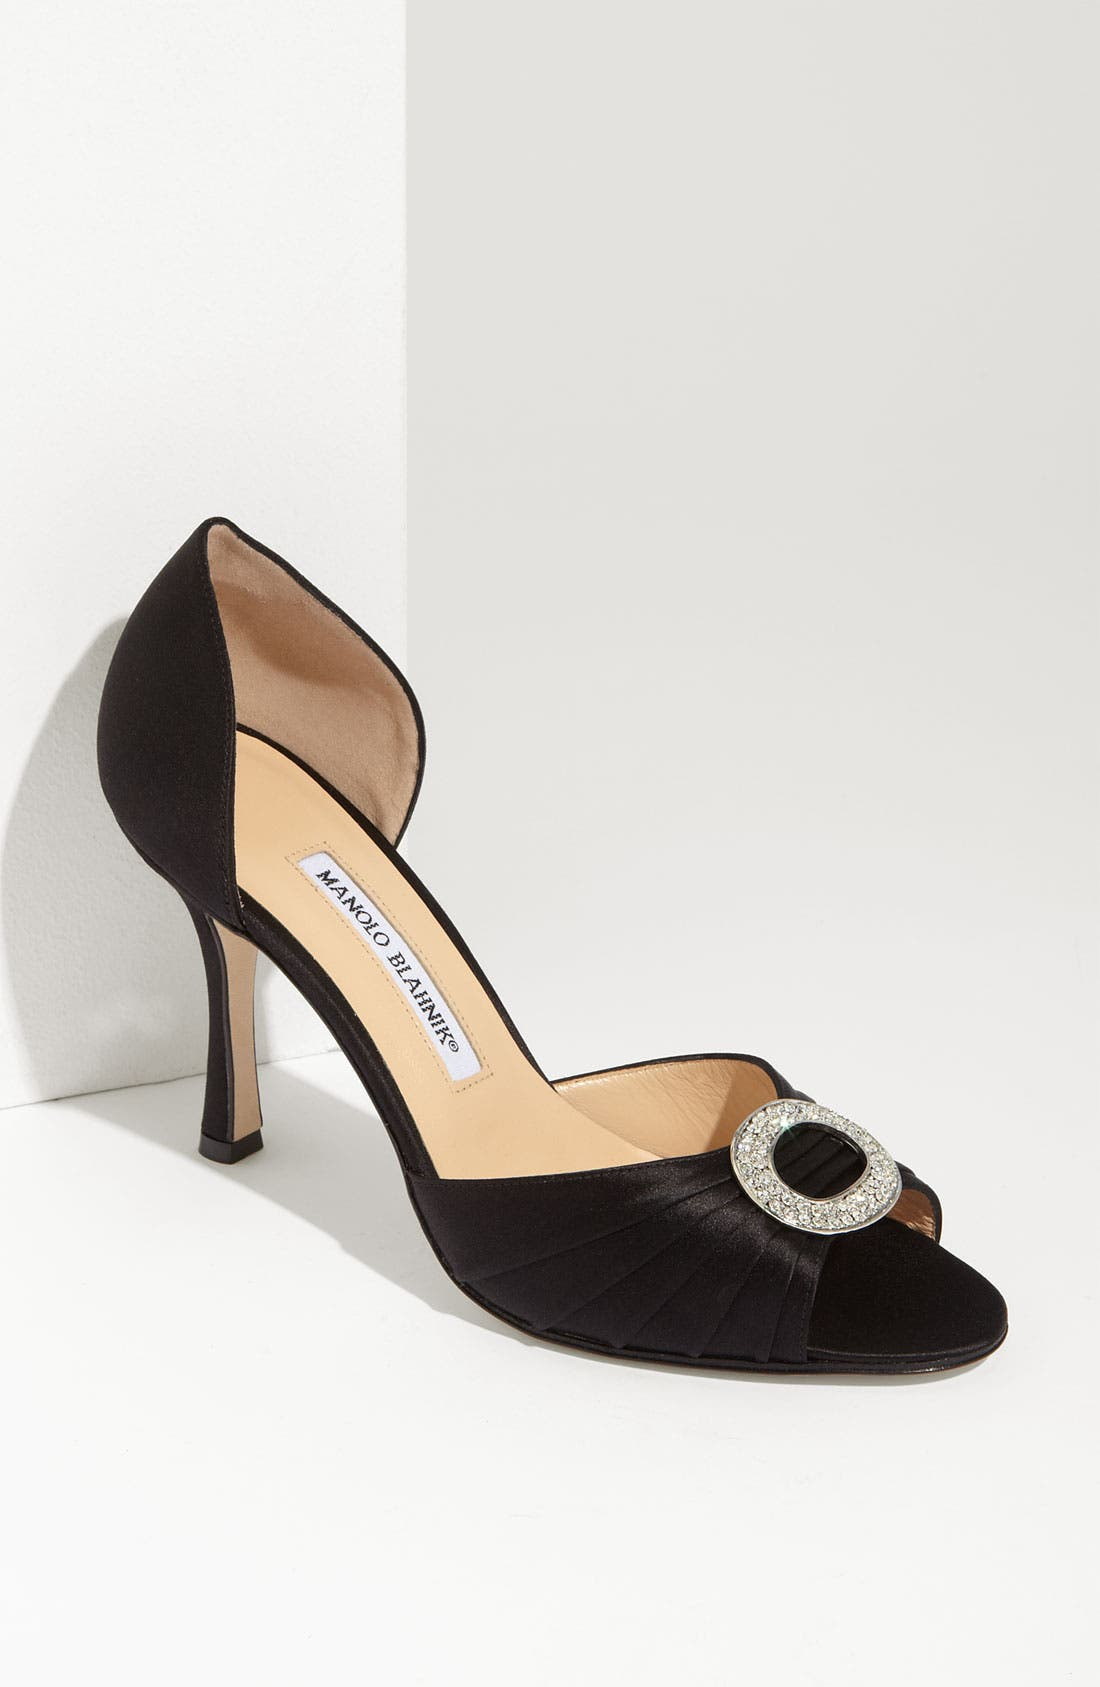 MANOLO BLAHNIK 'Sedaraby' Open Toe d'Orsay Pump, Main, color, 001